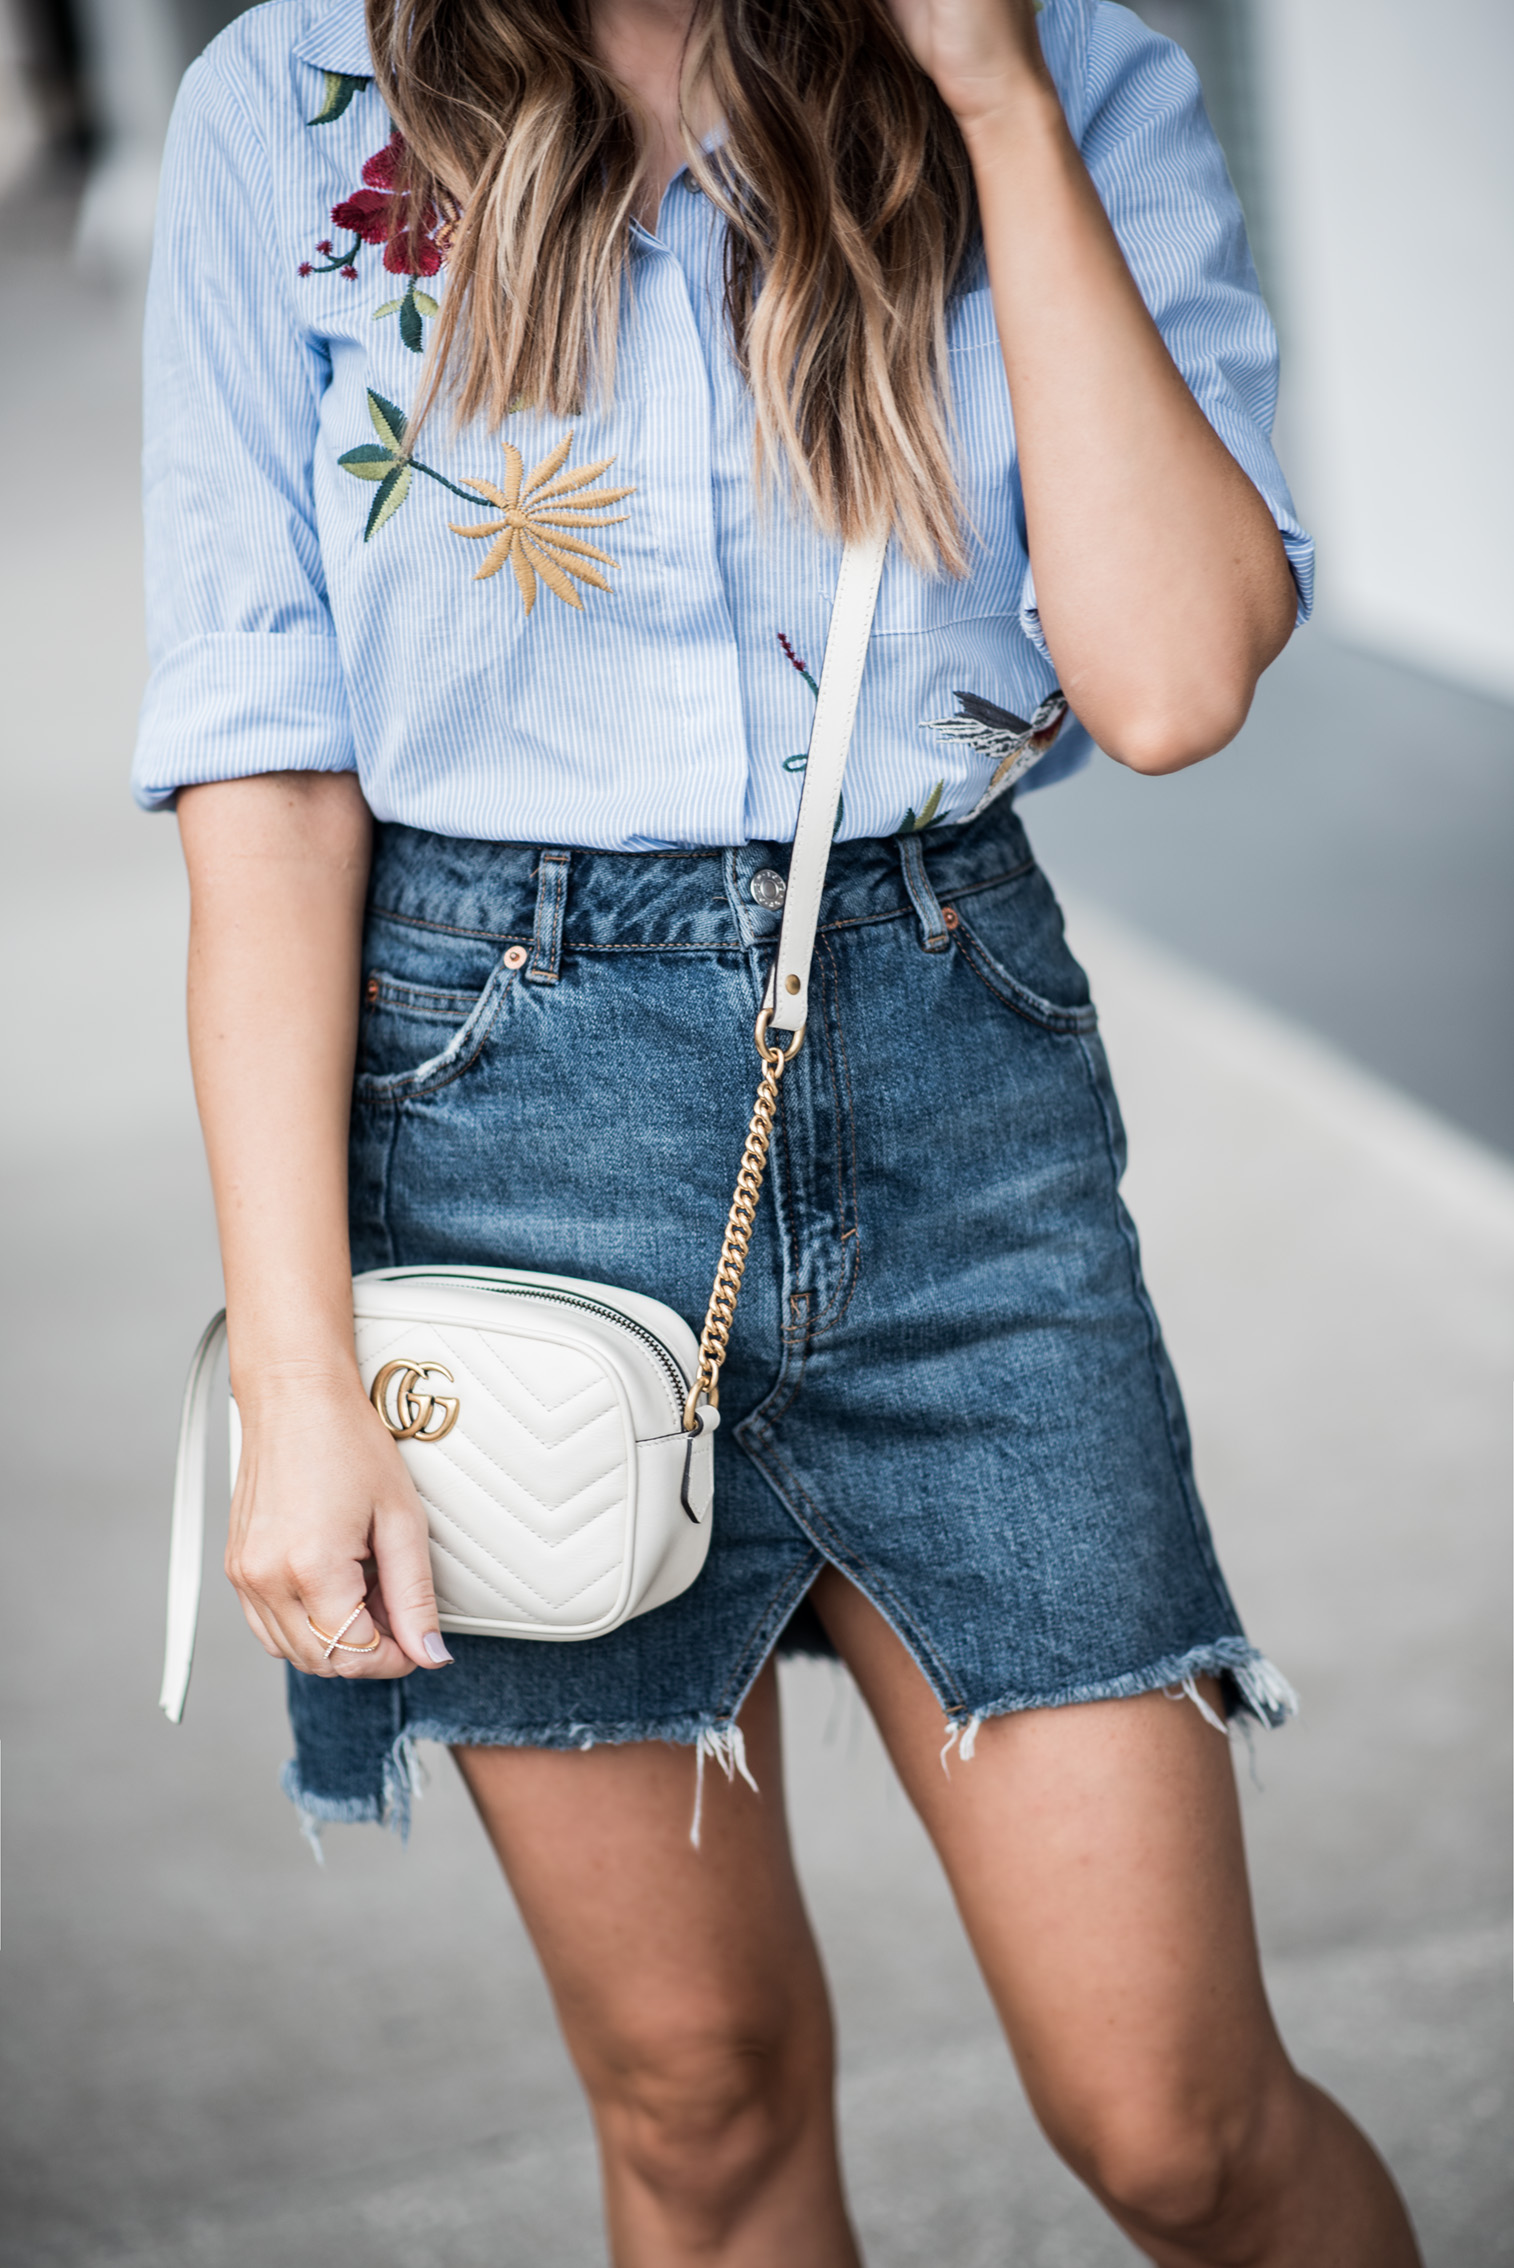 Tiffany Jais Houston fashion and lifestyle blogger of Flaunt and Center | What to look for when buying a denim skirt, casual outfit ideas, street style 2017